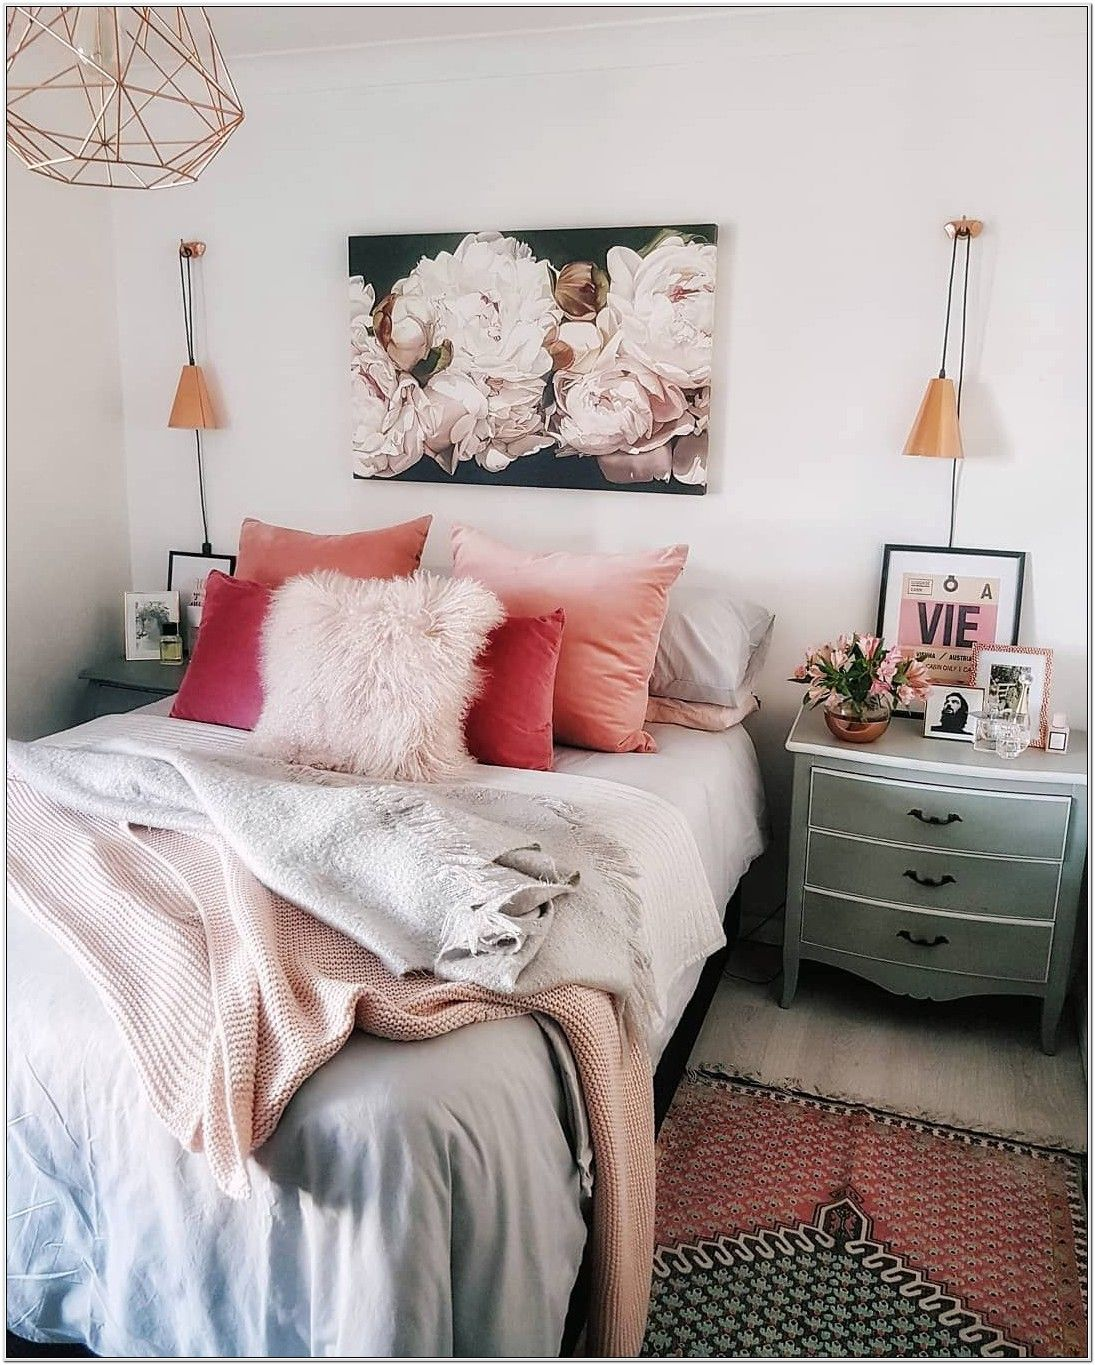 bedroom decorating ideas small bedroom decorating ideas in on cute bedroom decor ideas for teen romantic bedroom decorating with light and color id=59246